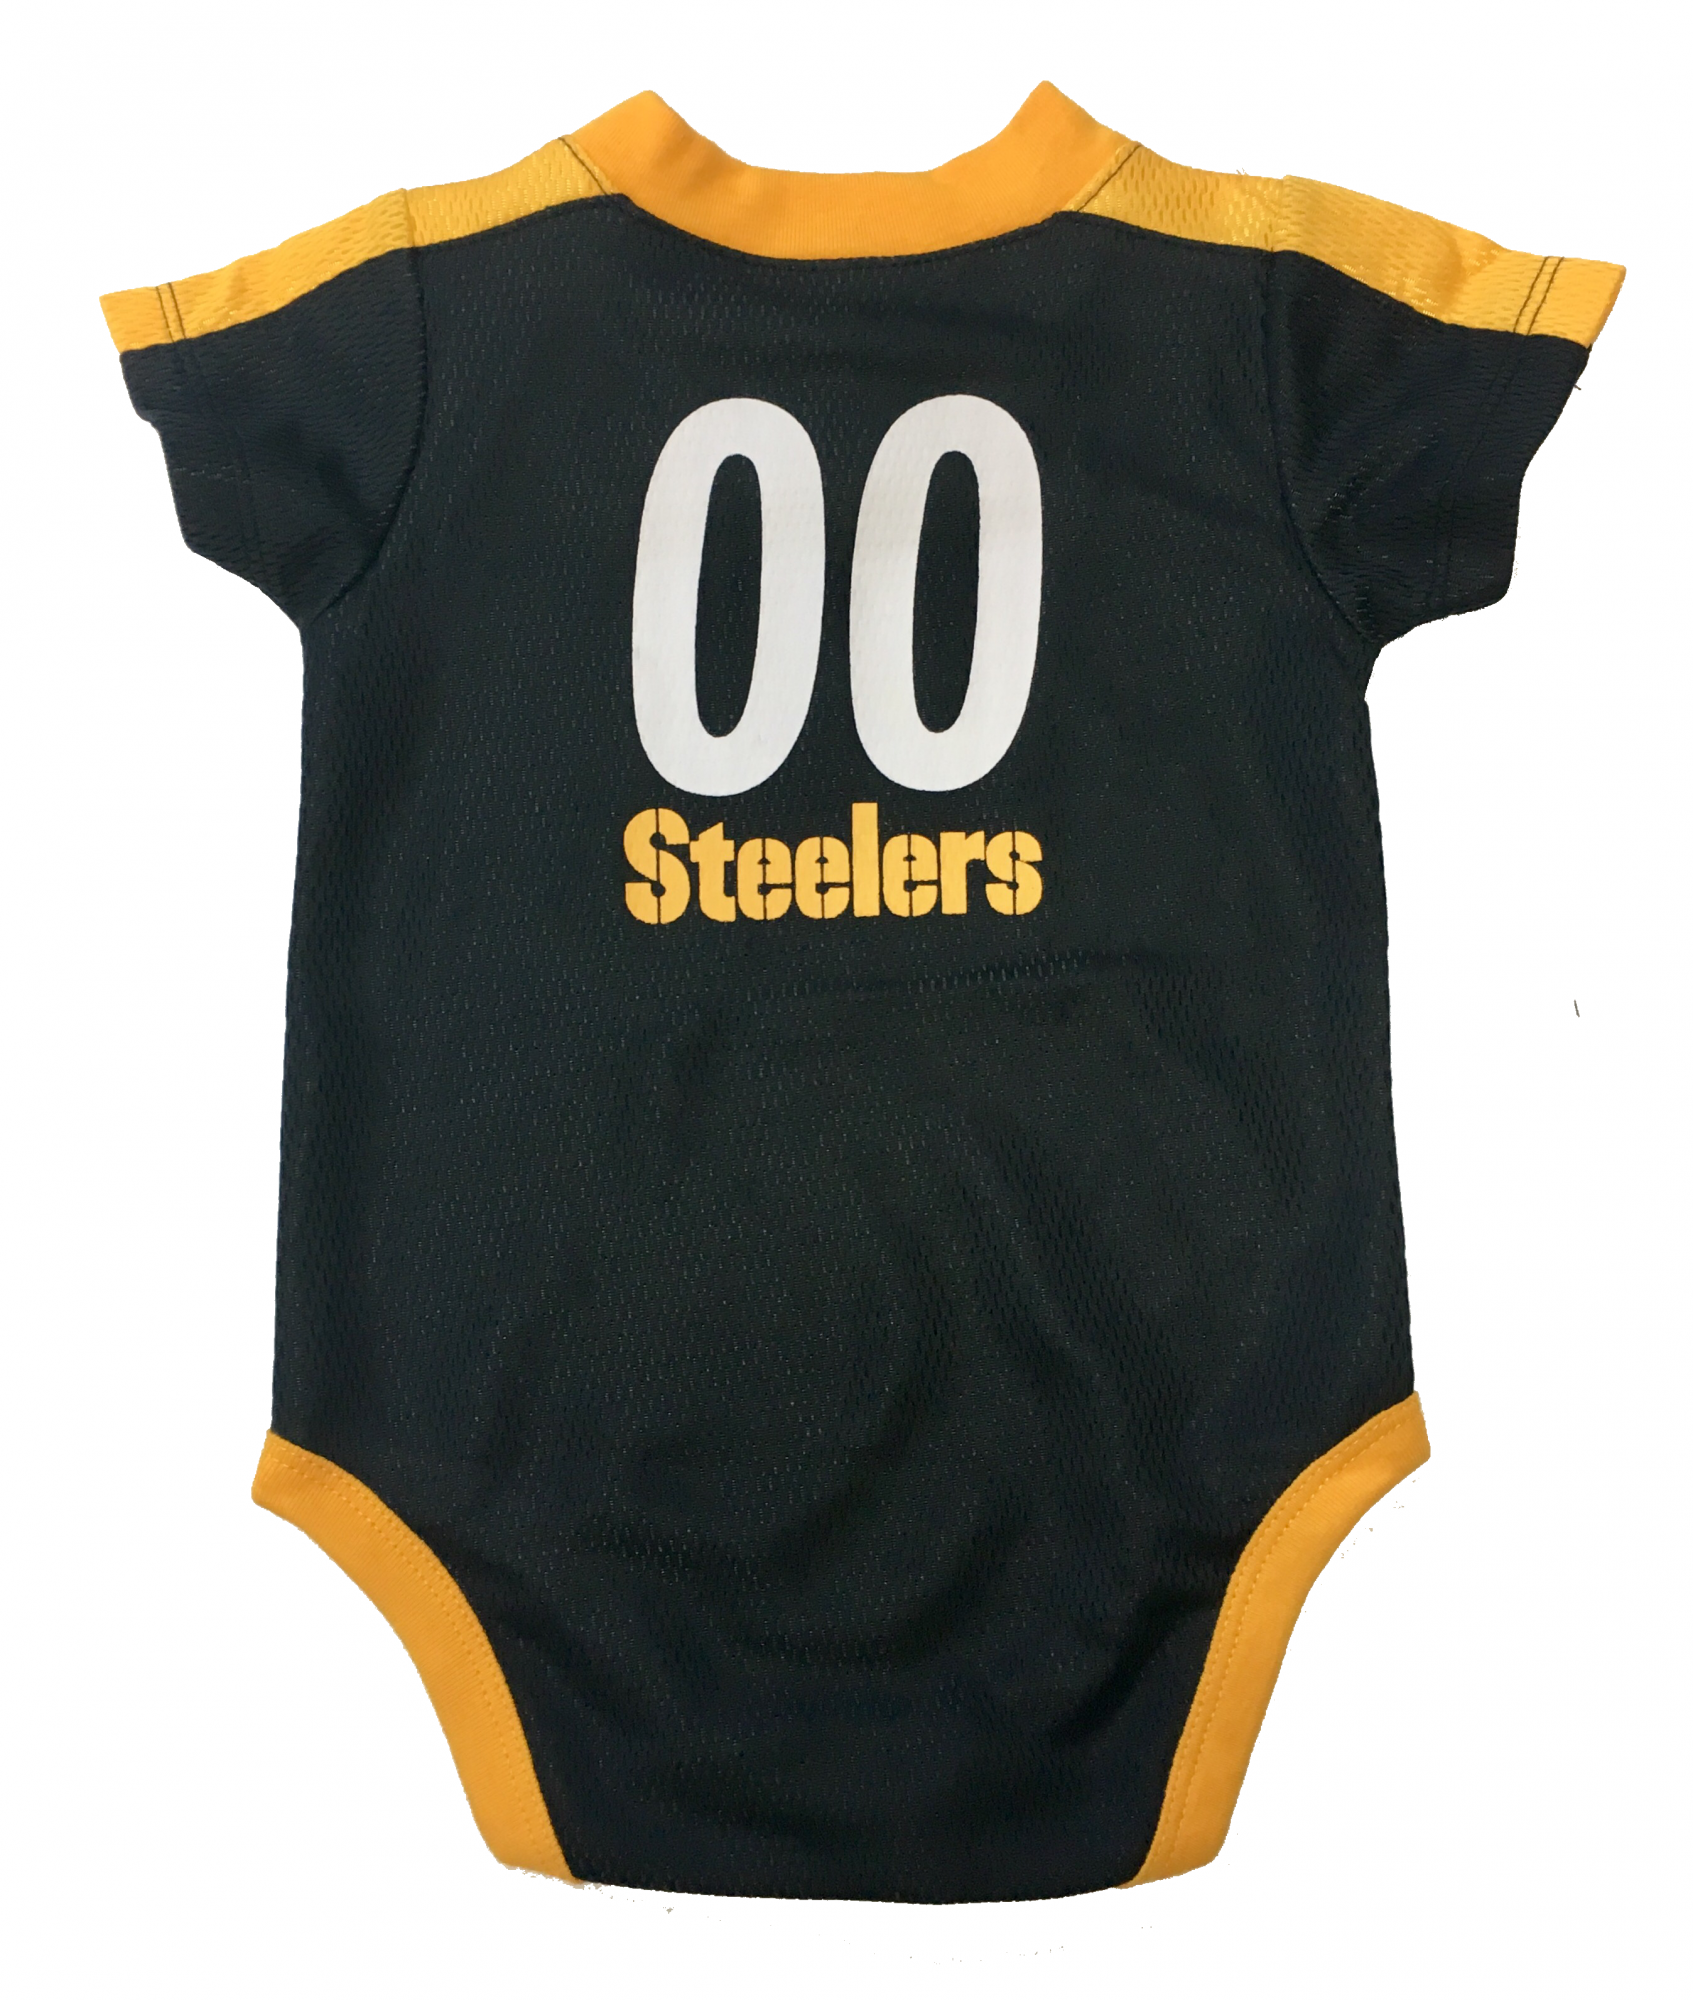 NFL-Steelers-baby-player-jersey-back.PNG